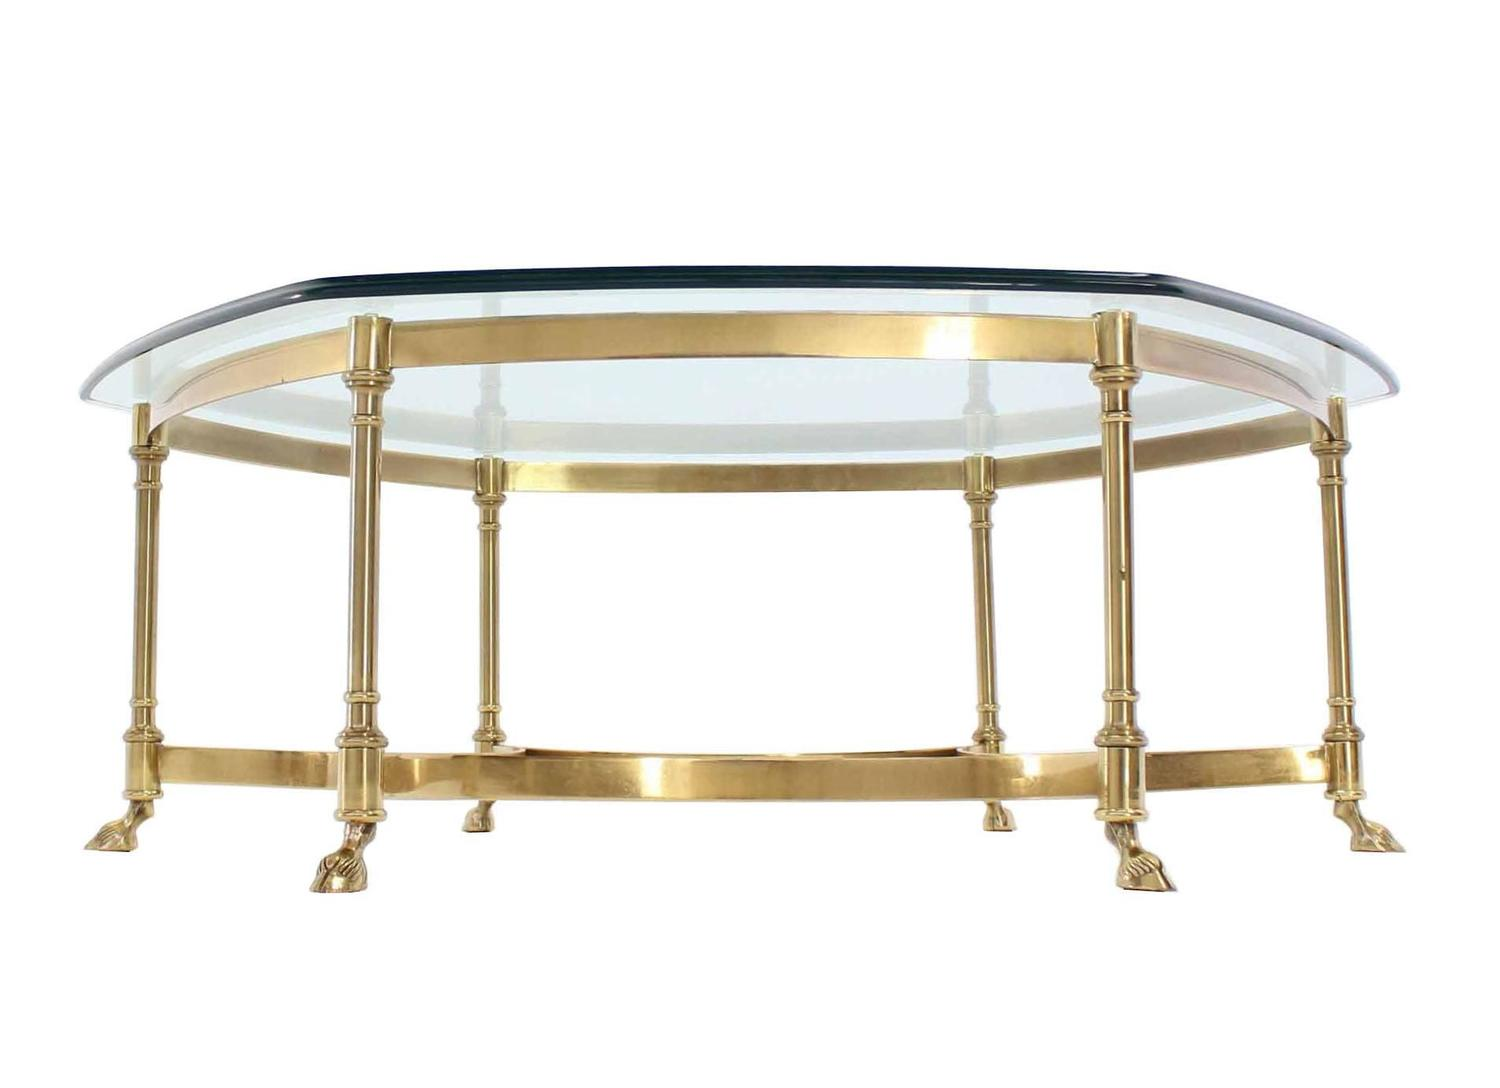 Solid Brass Hoof Feet Glass Top Coffee Table For Sale At 1stdibs